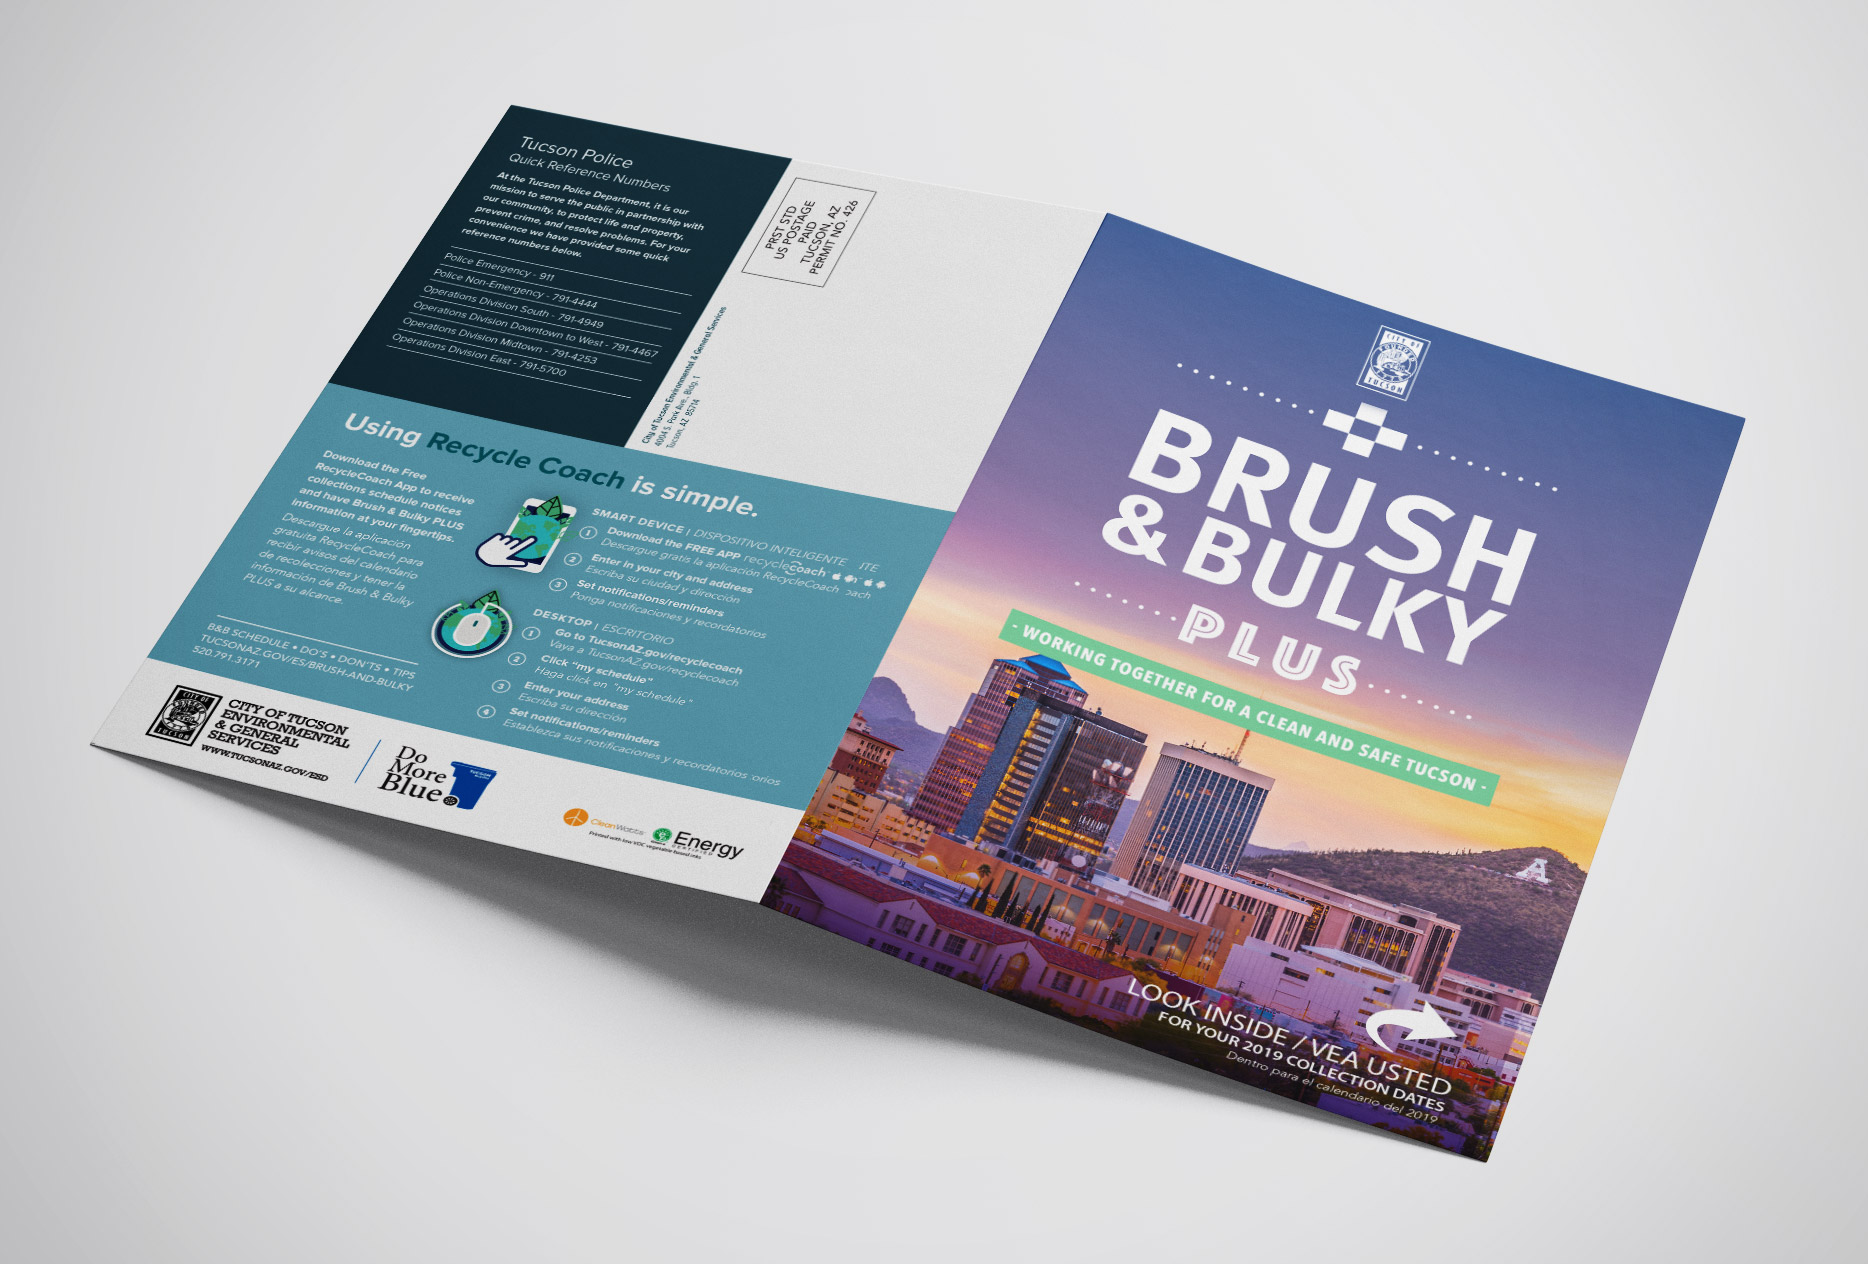 brush-bulky-flyer.jpg